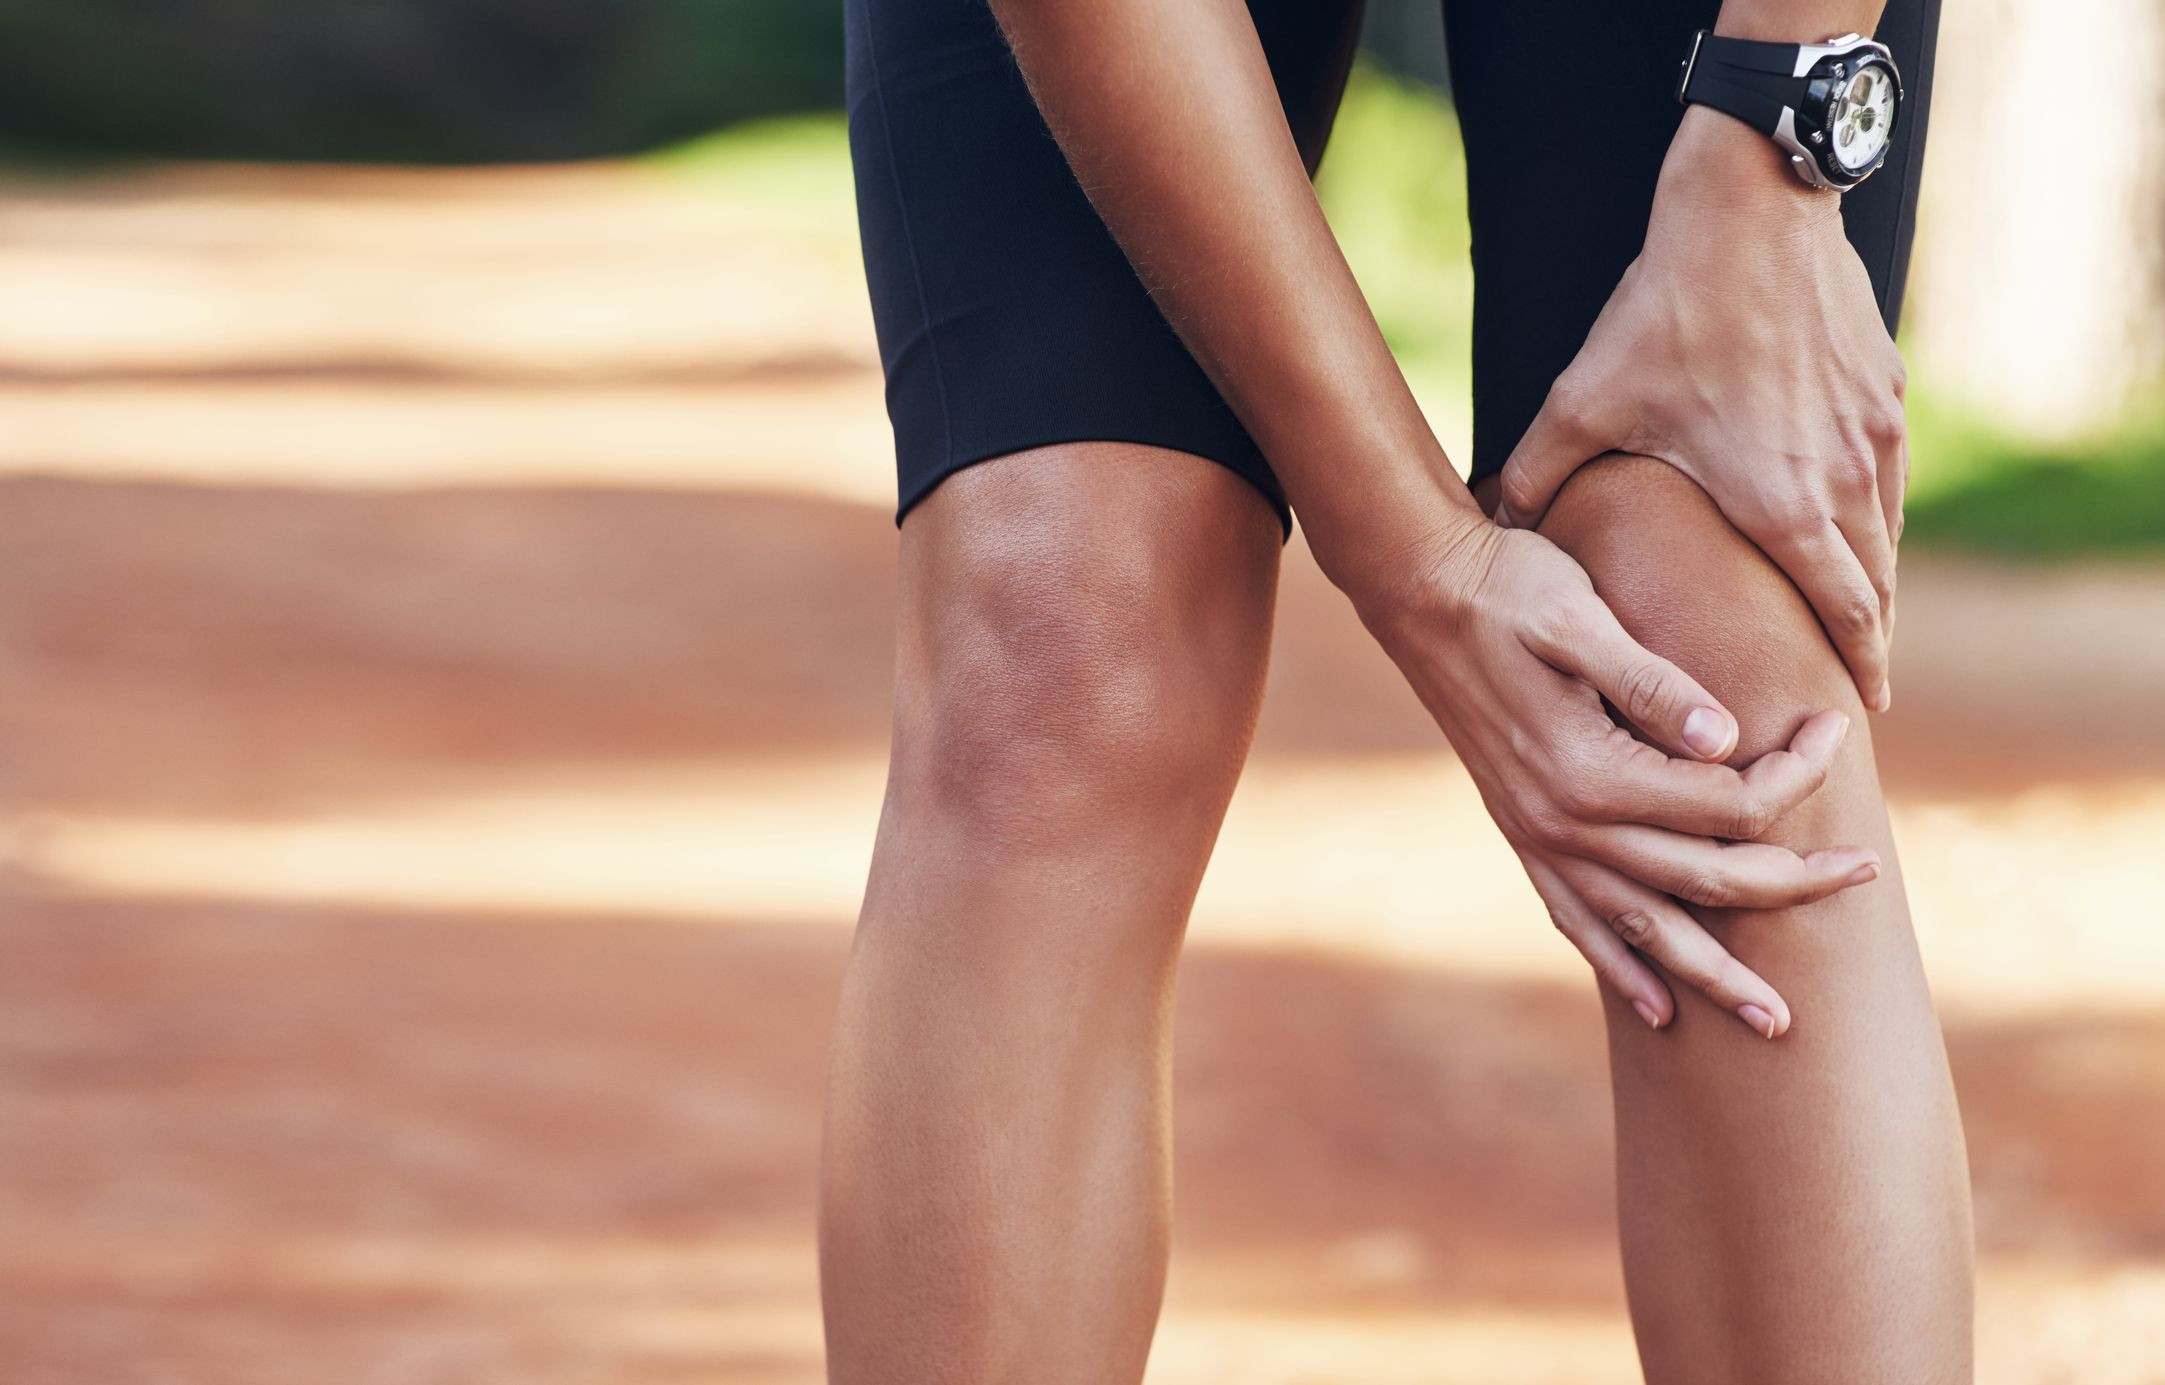 Knee pain: what sports can we practice?